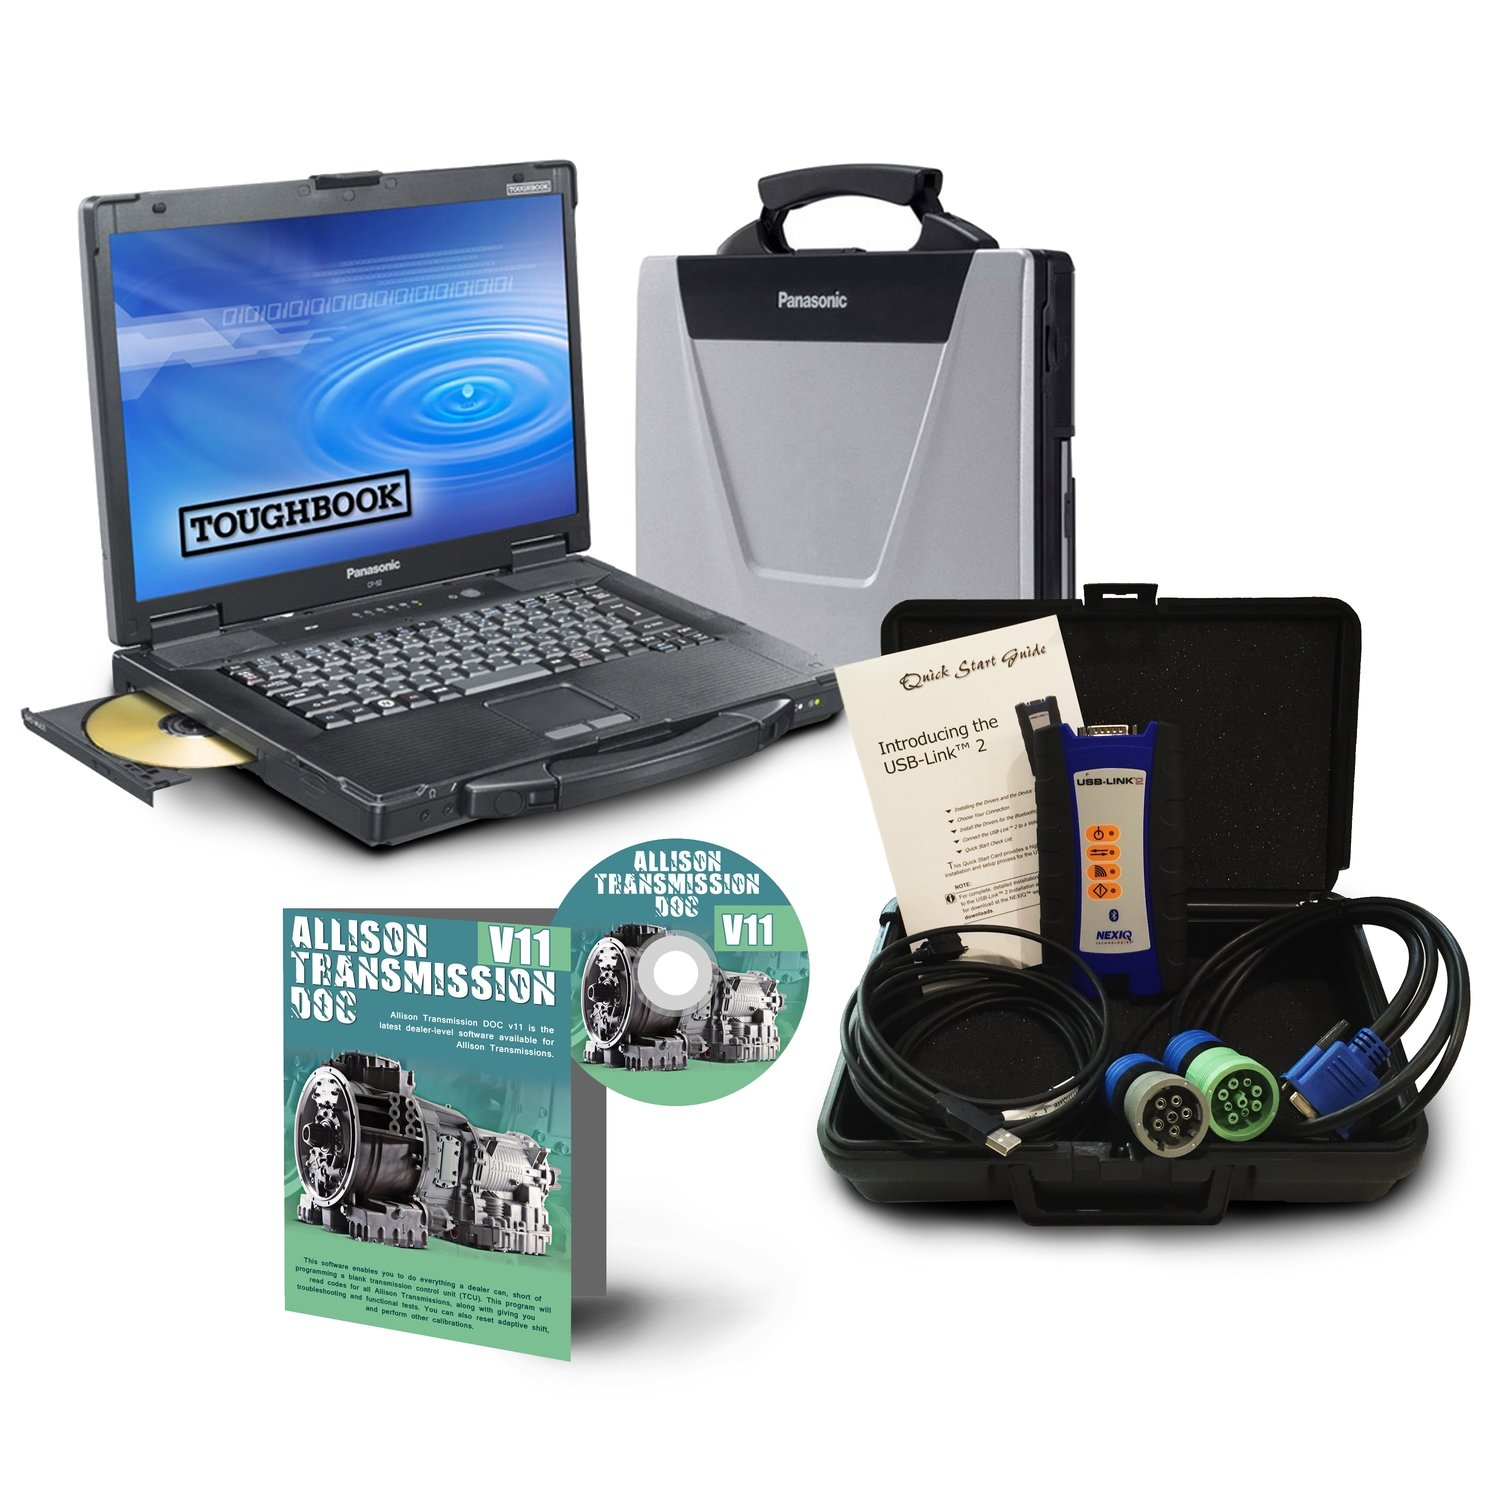 Allison DOC diagnostic solutions Toughbook Dealer Package with NexIQ USB Link 2